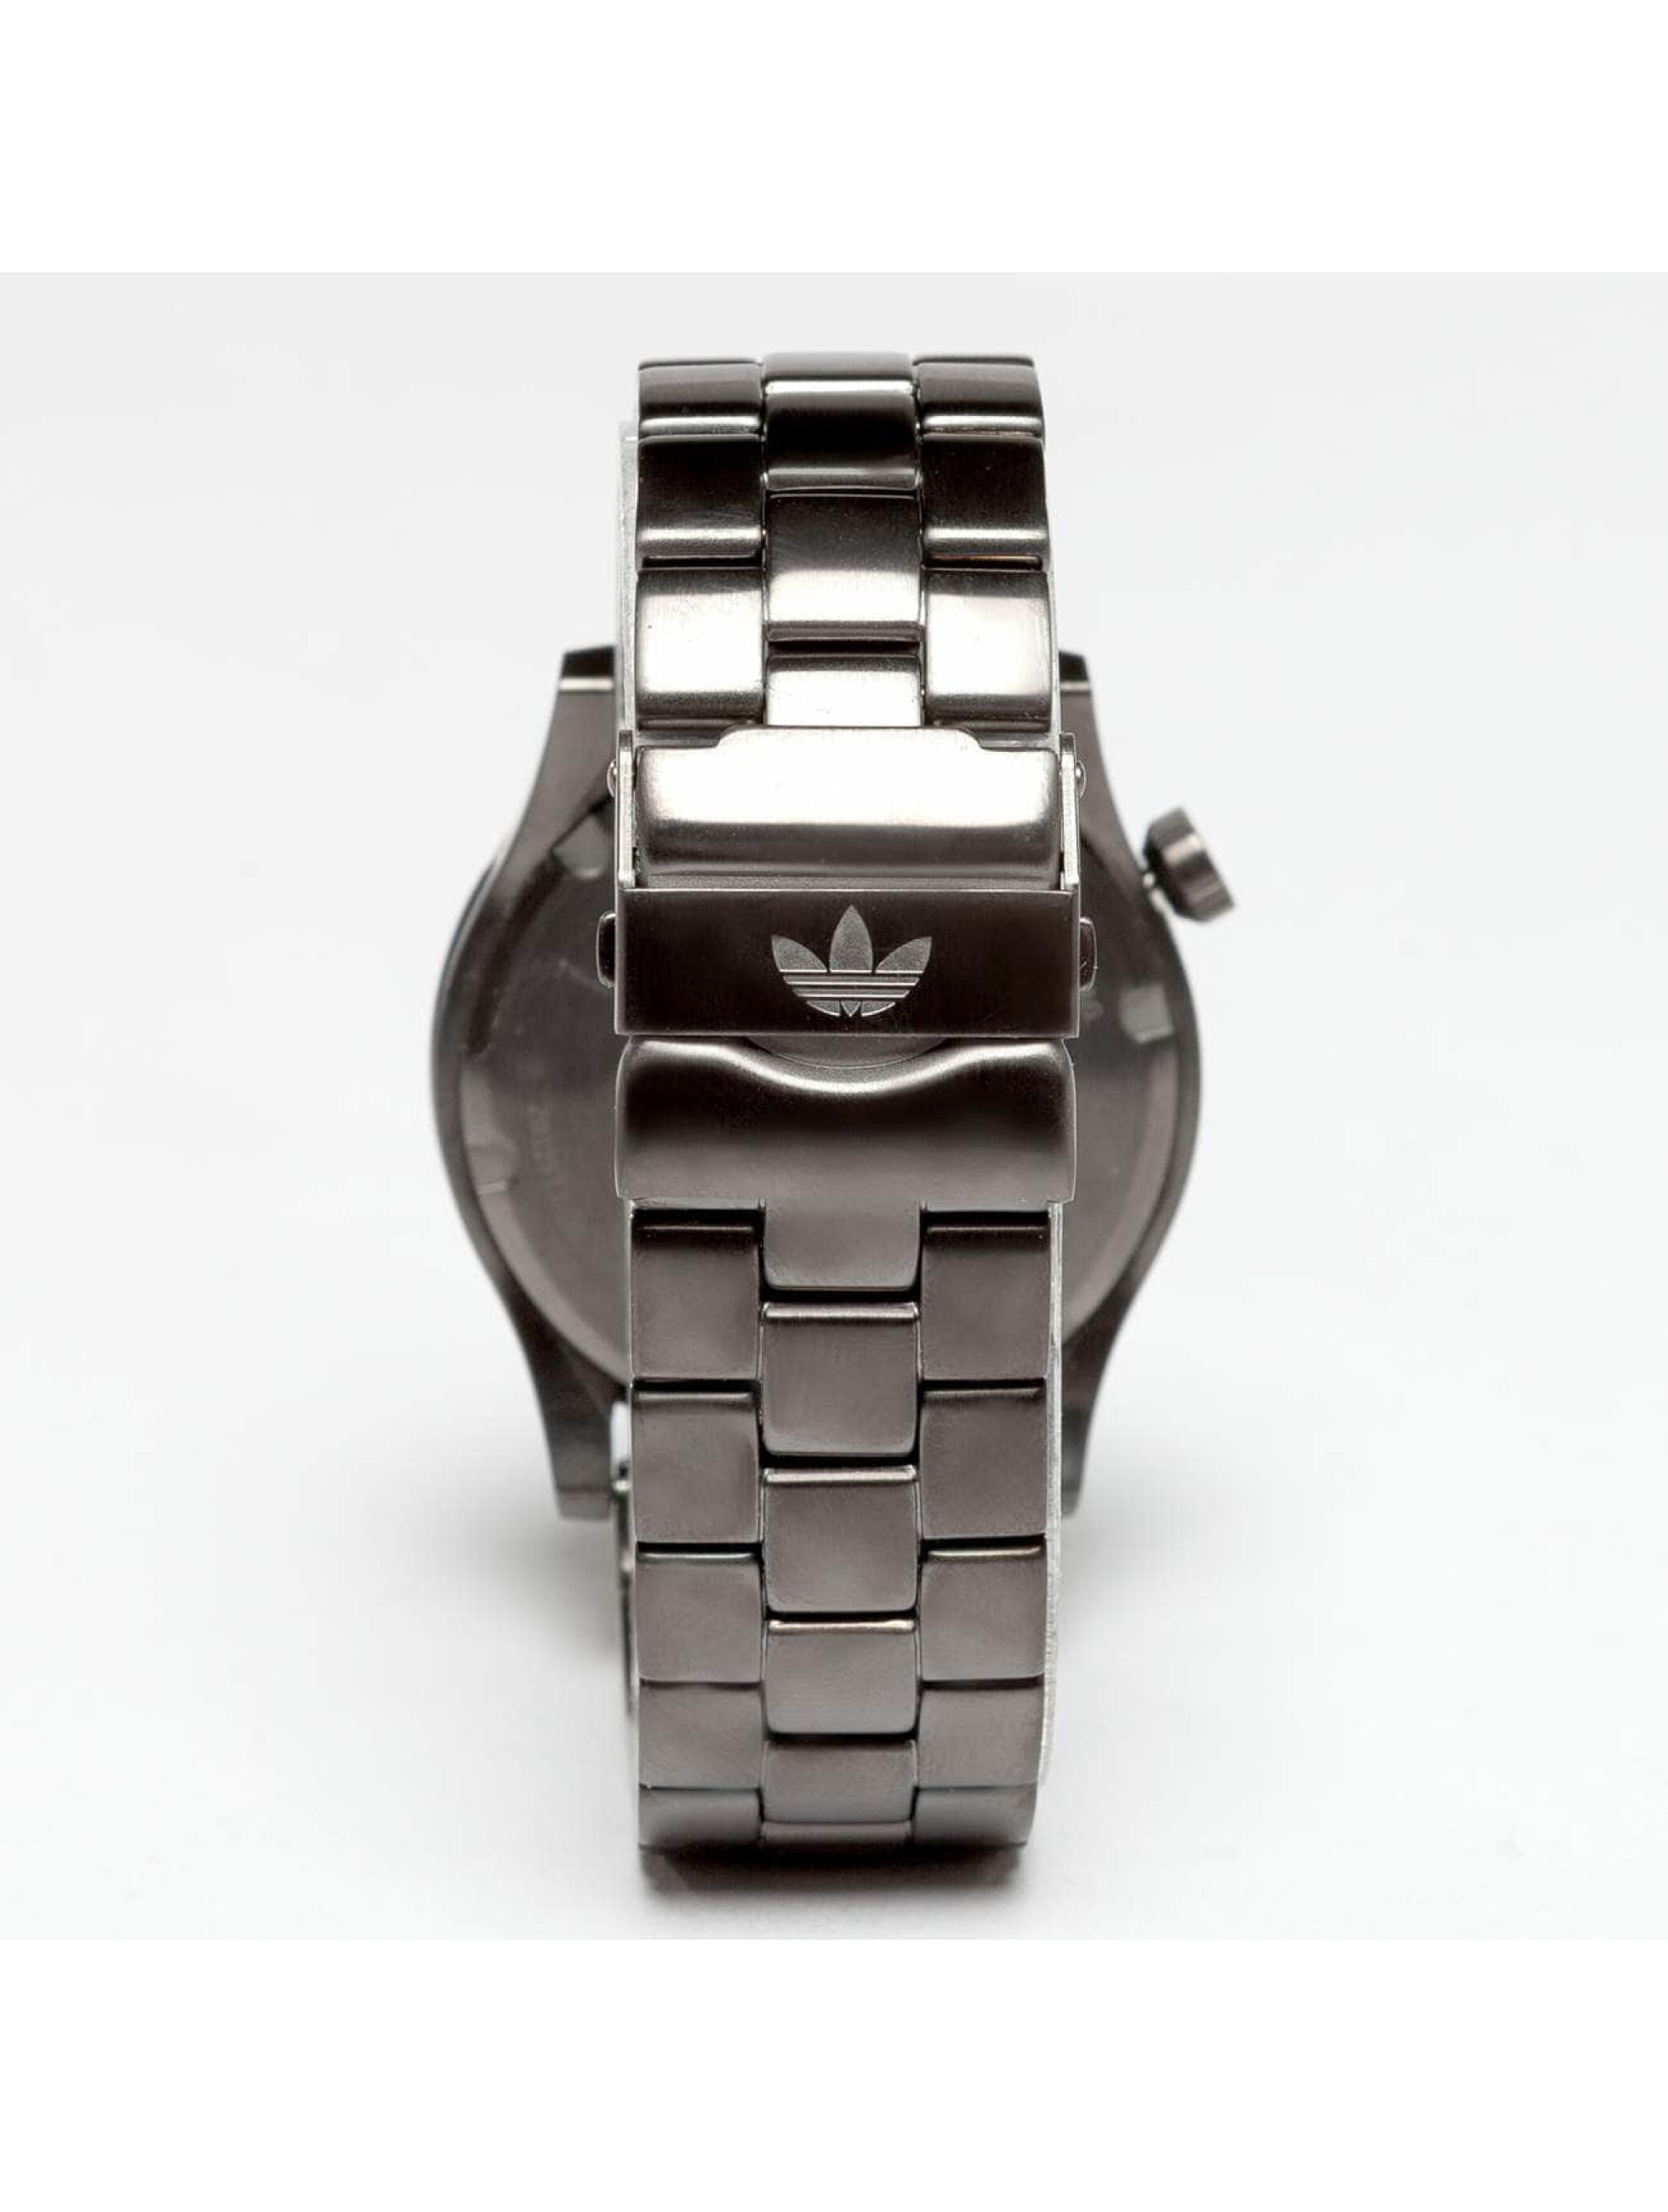 Adidas Watches horloge Cypher M1 grijs